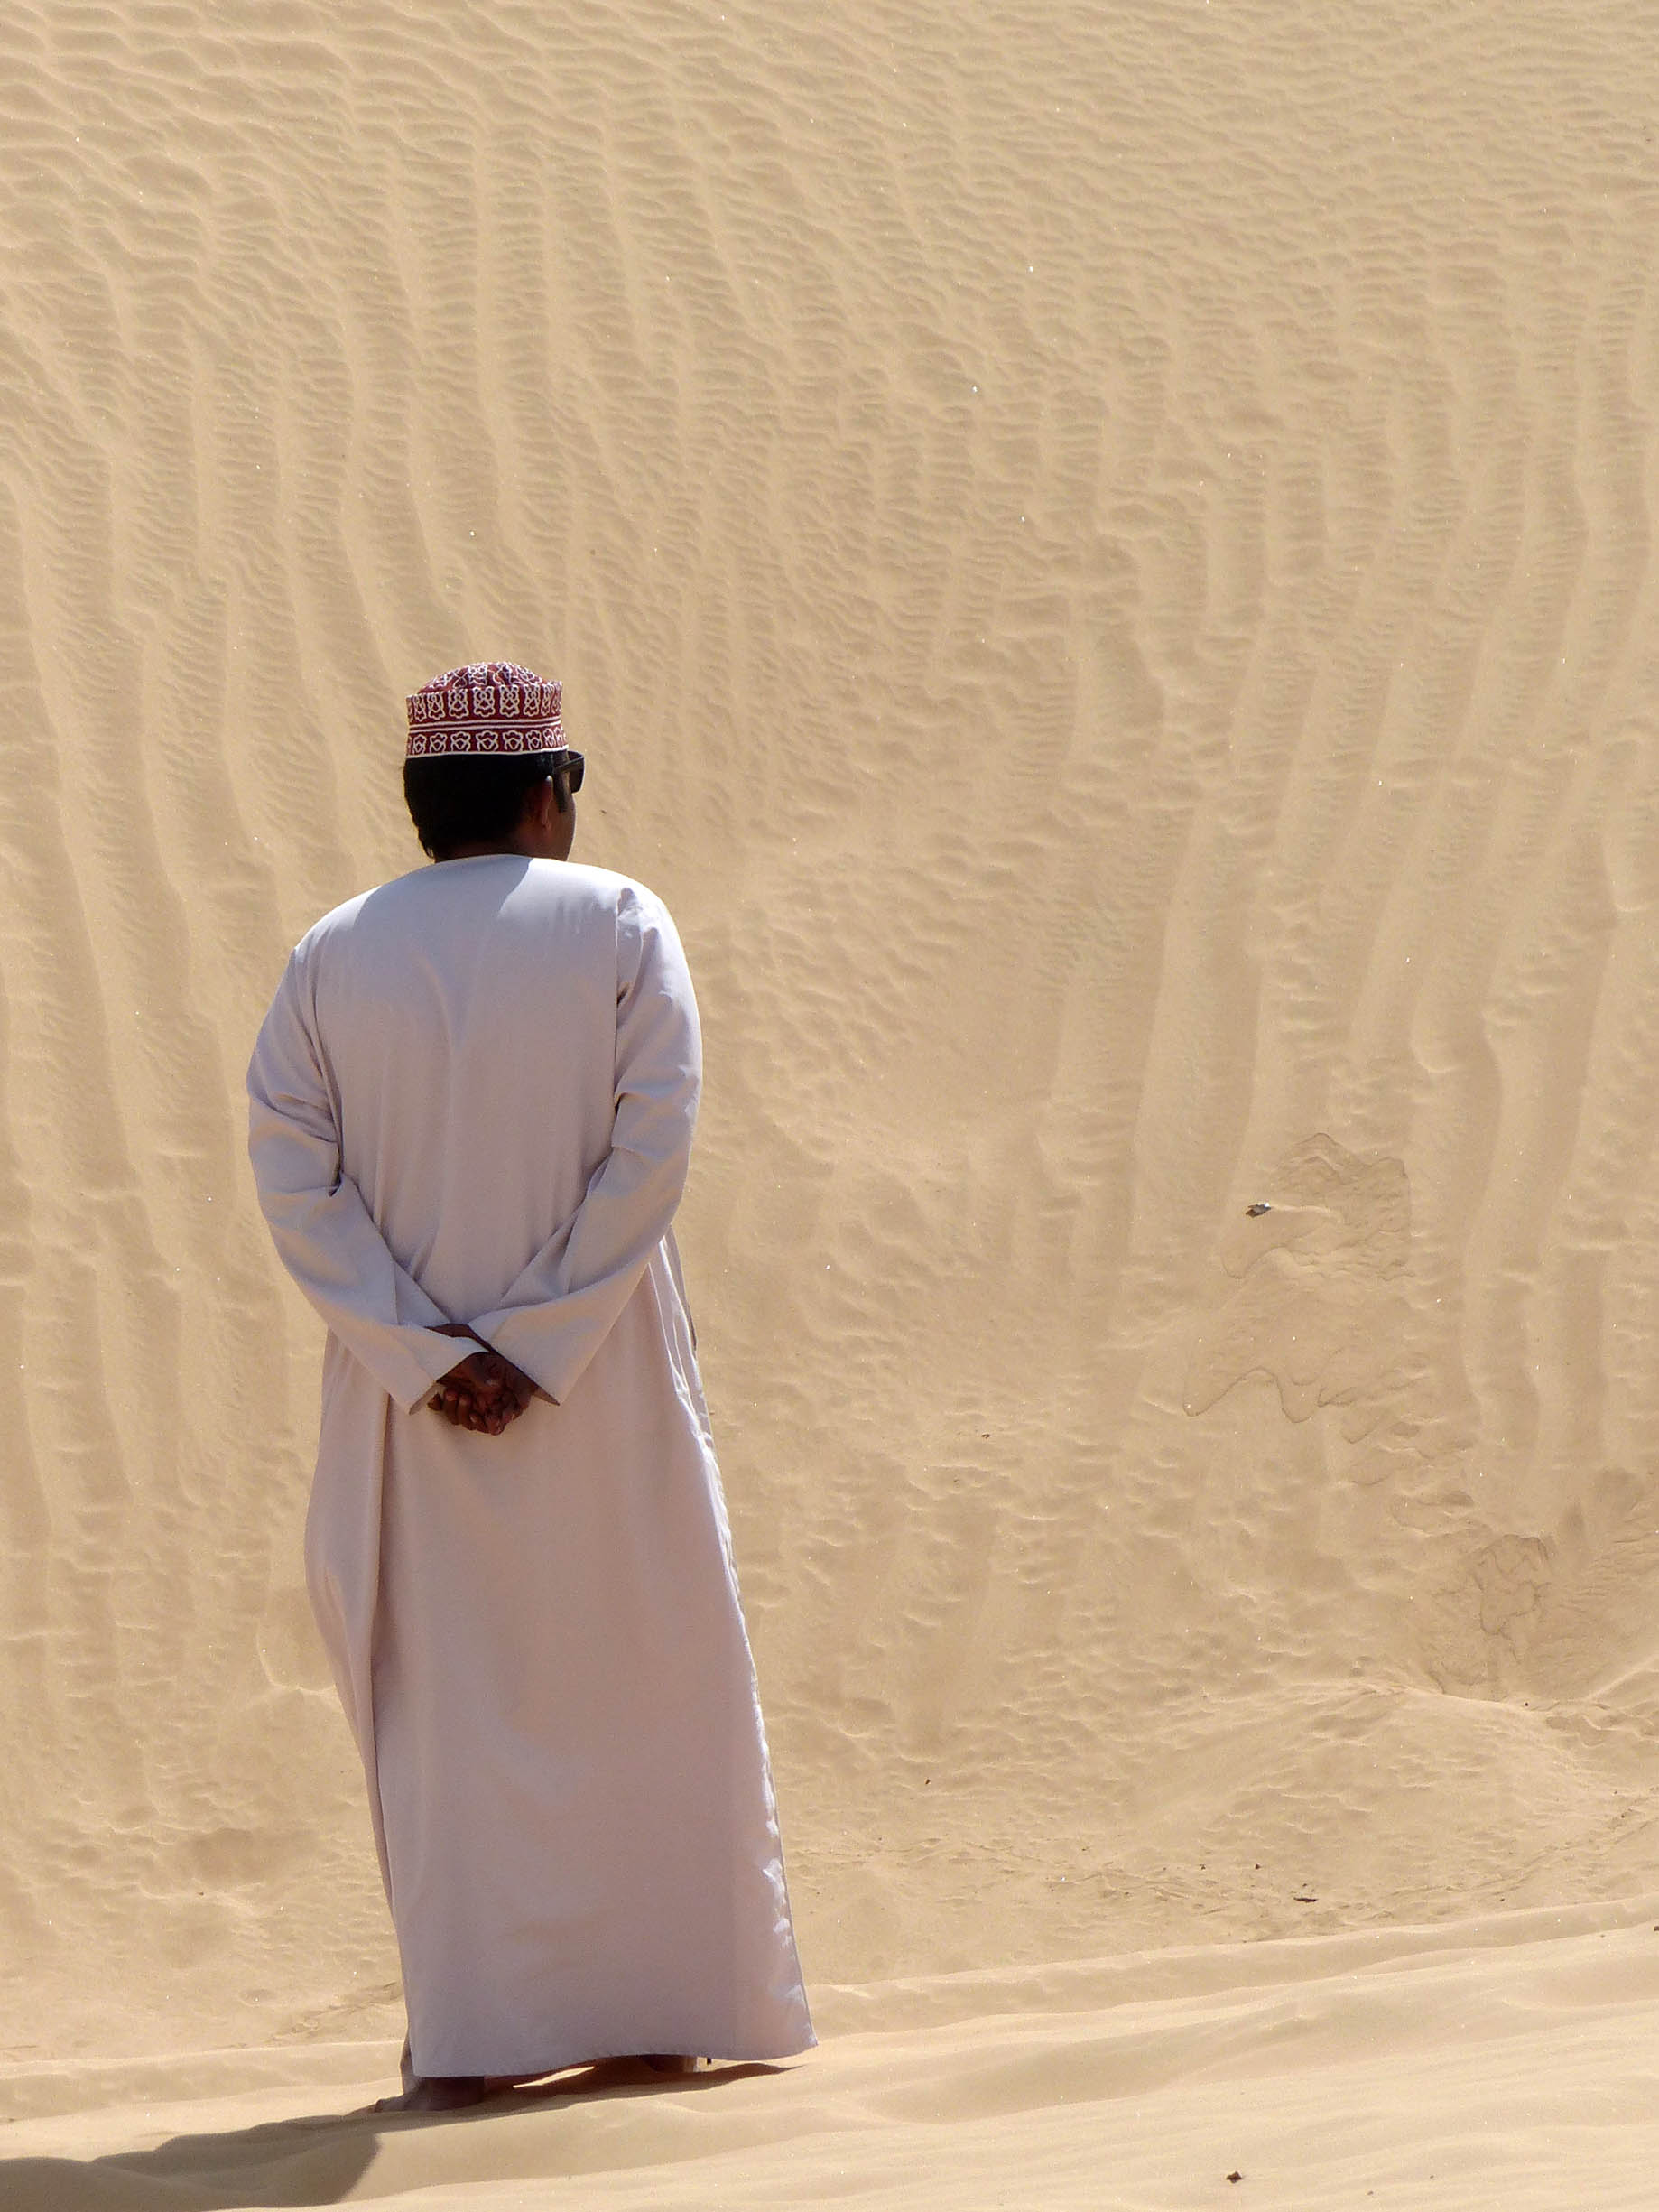 Man in white robes on a sand dune